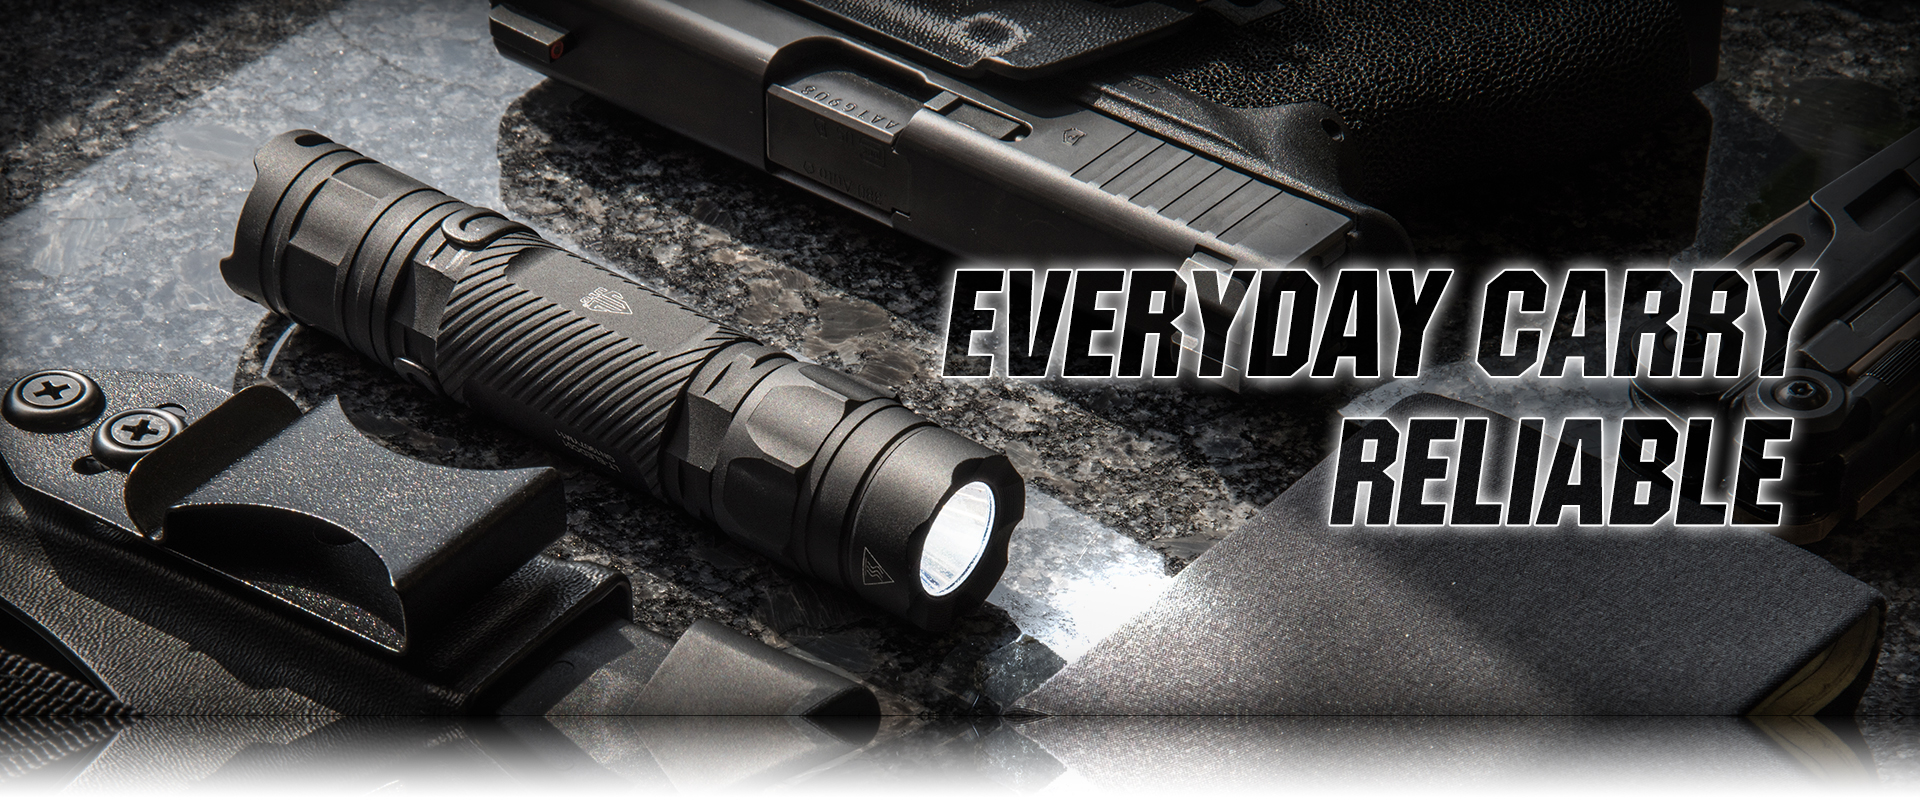 UTG Everyday Carry Flashlight